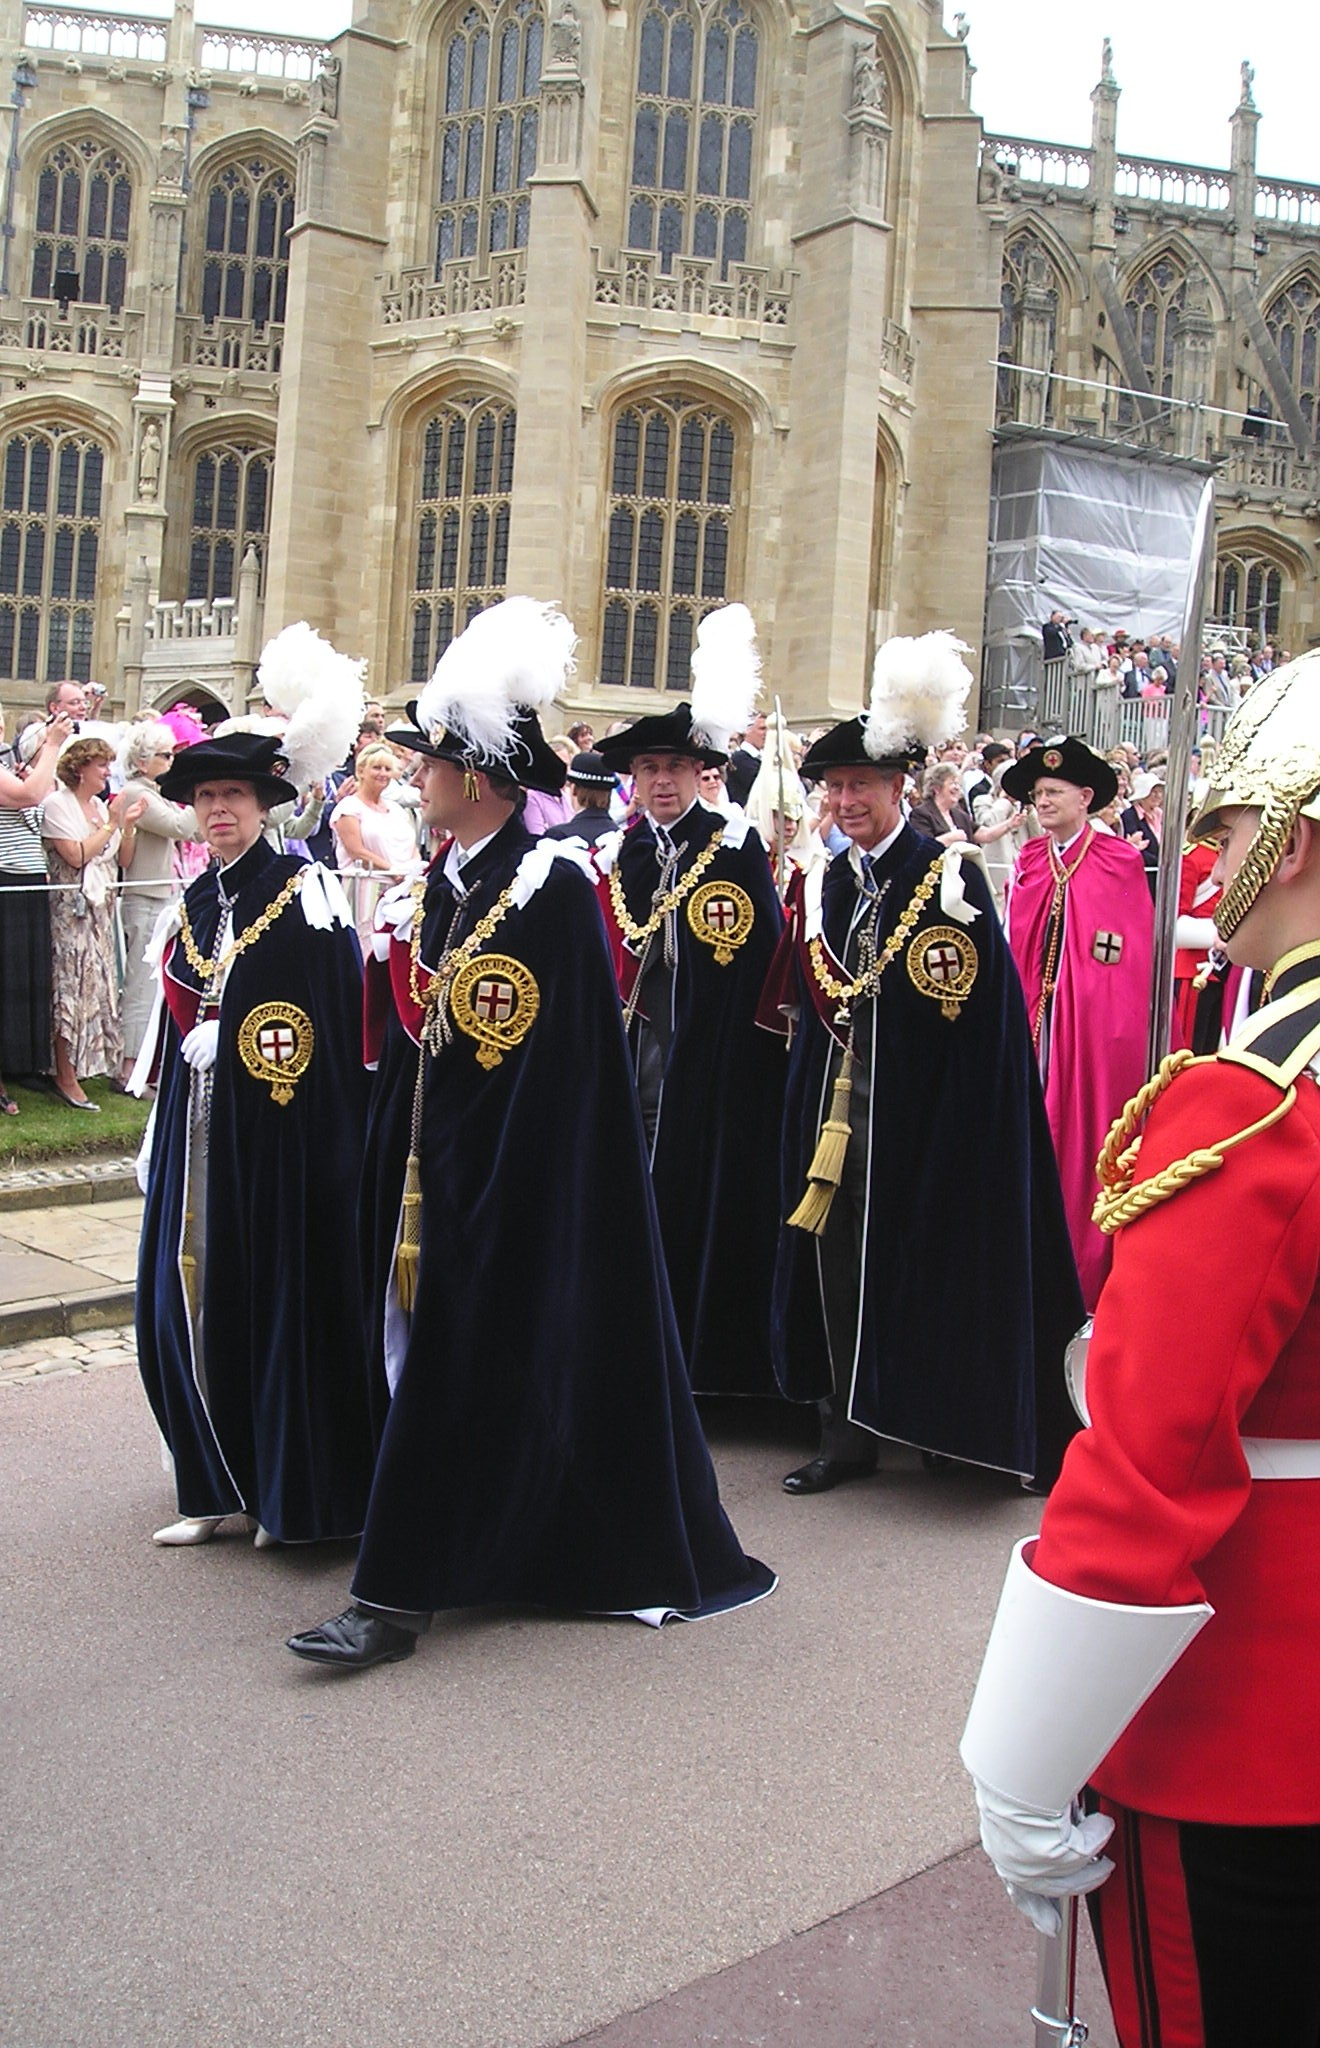 Knights of the Garter